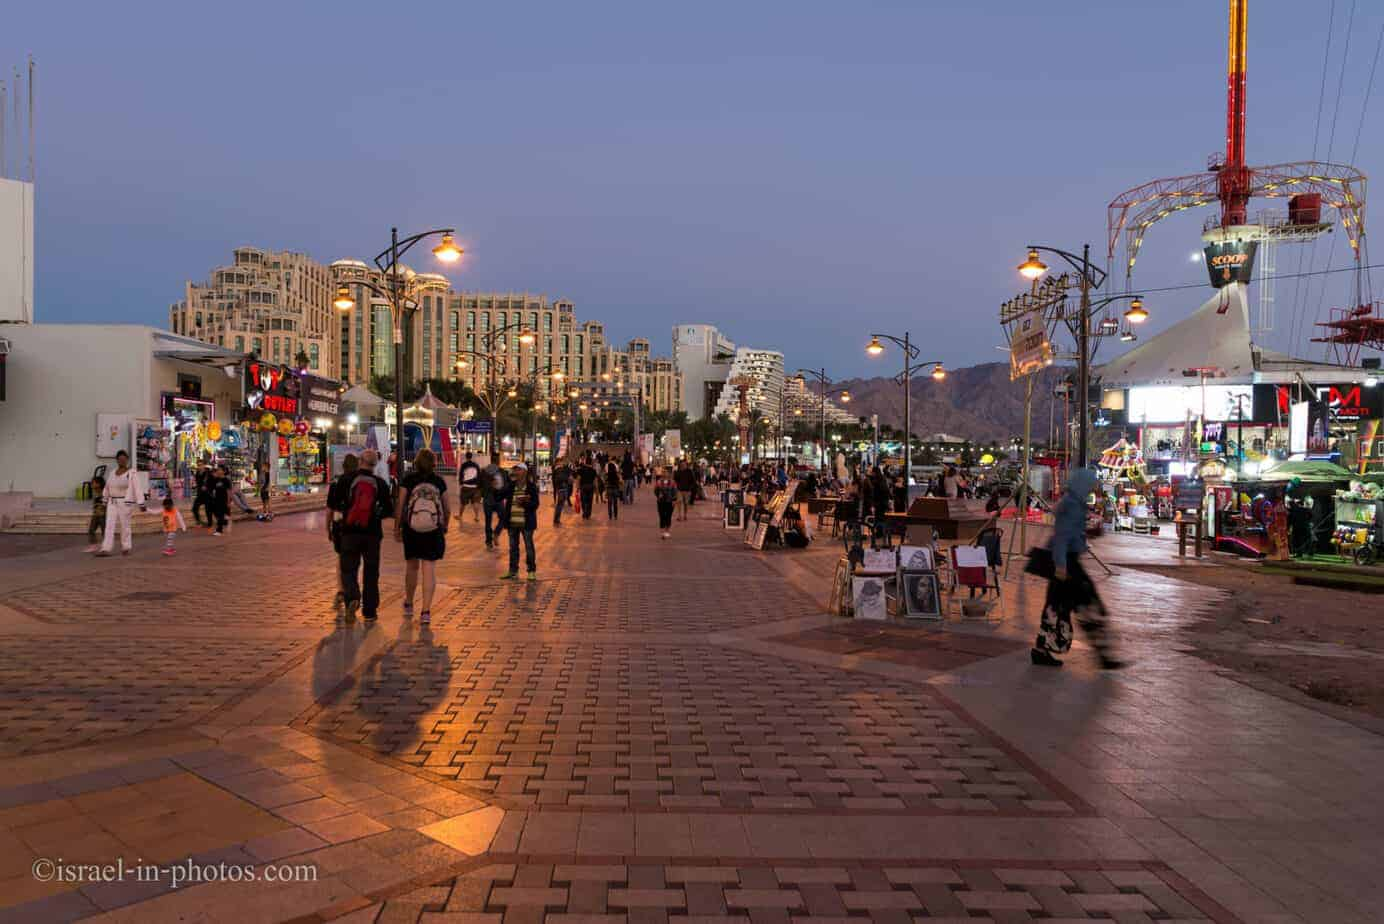 Winter Trip to Eilat, Israel